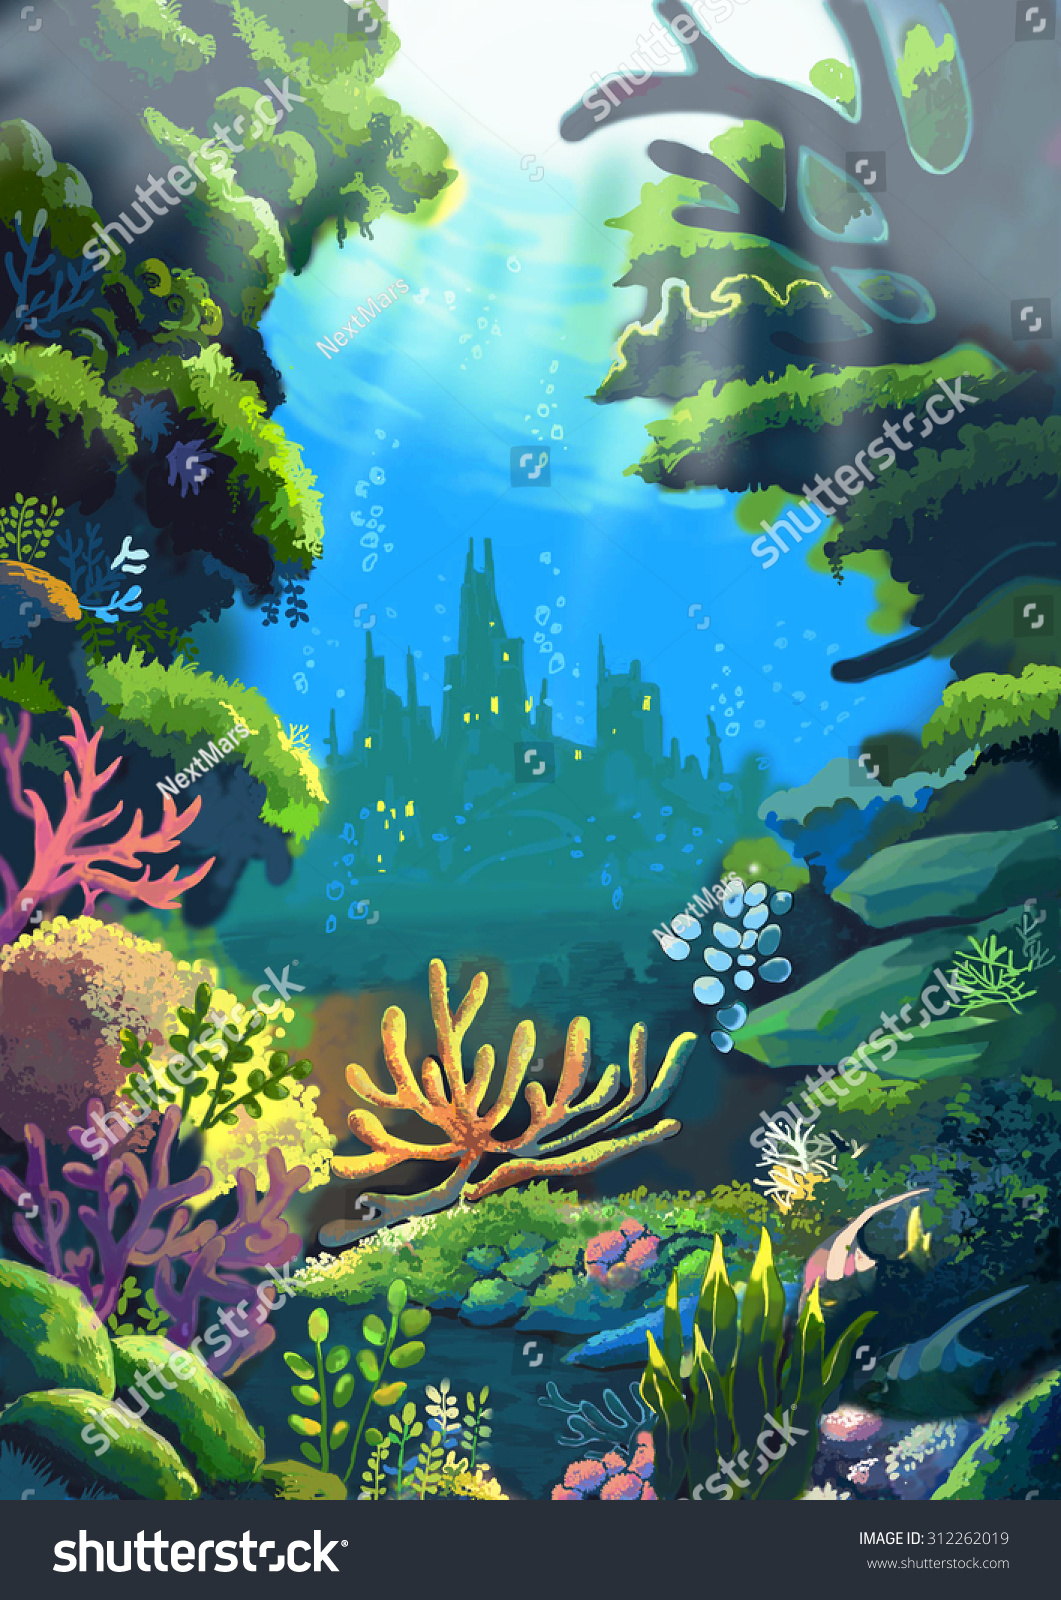 Illustration Sea Where Little Mermaids Father Stock ...